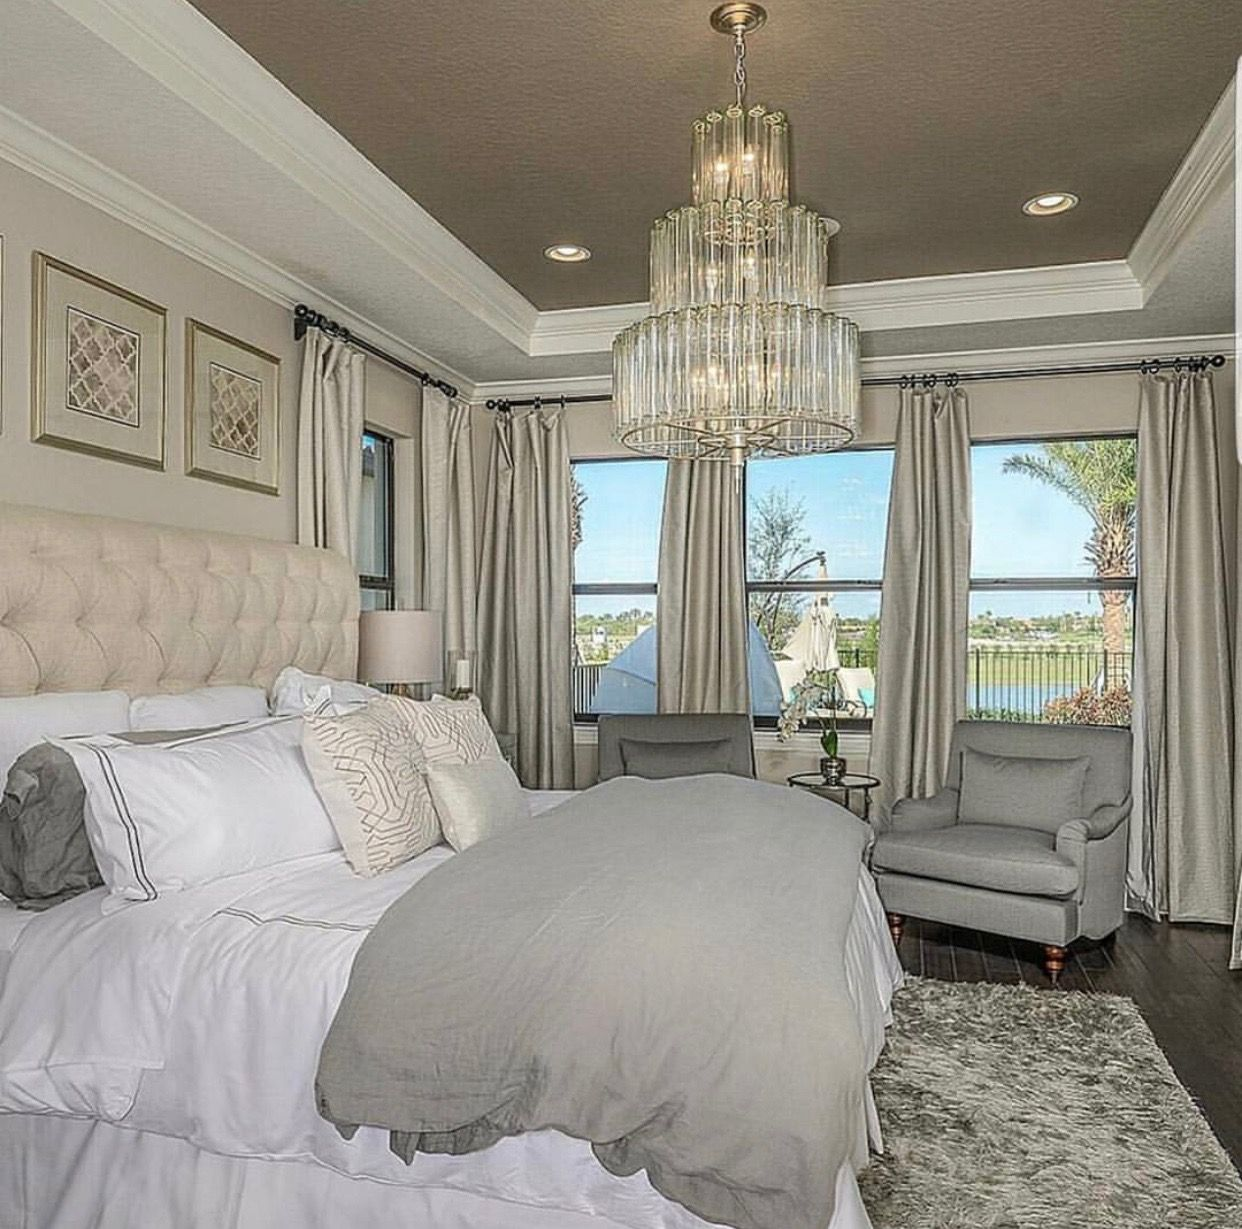 View for our dazzling ensuite! Classy, contemporary and